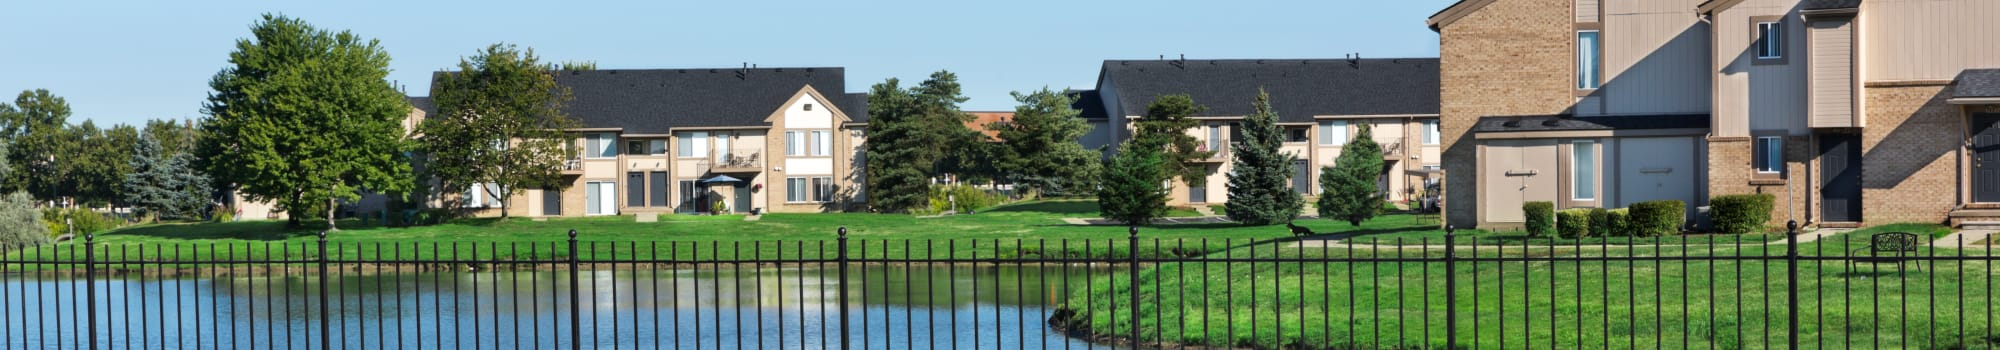 Read the privacy policy for Lakeside Terraces in Sterling Heights, Michigan